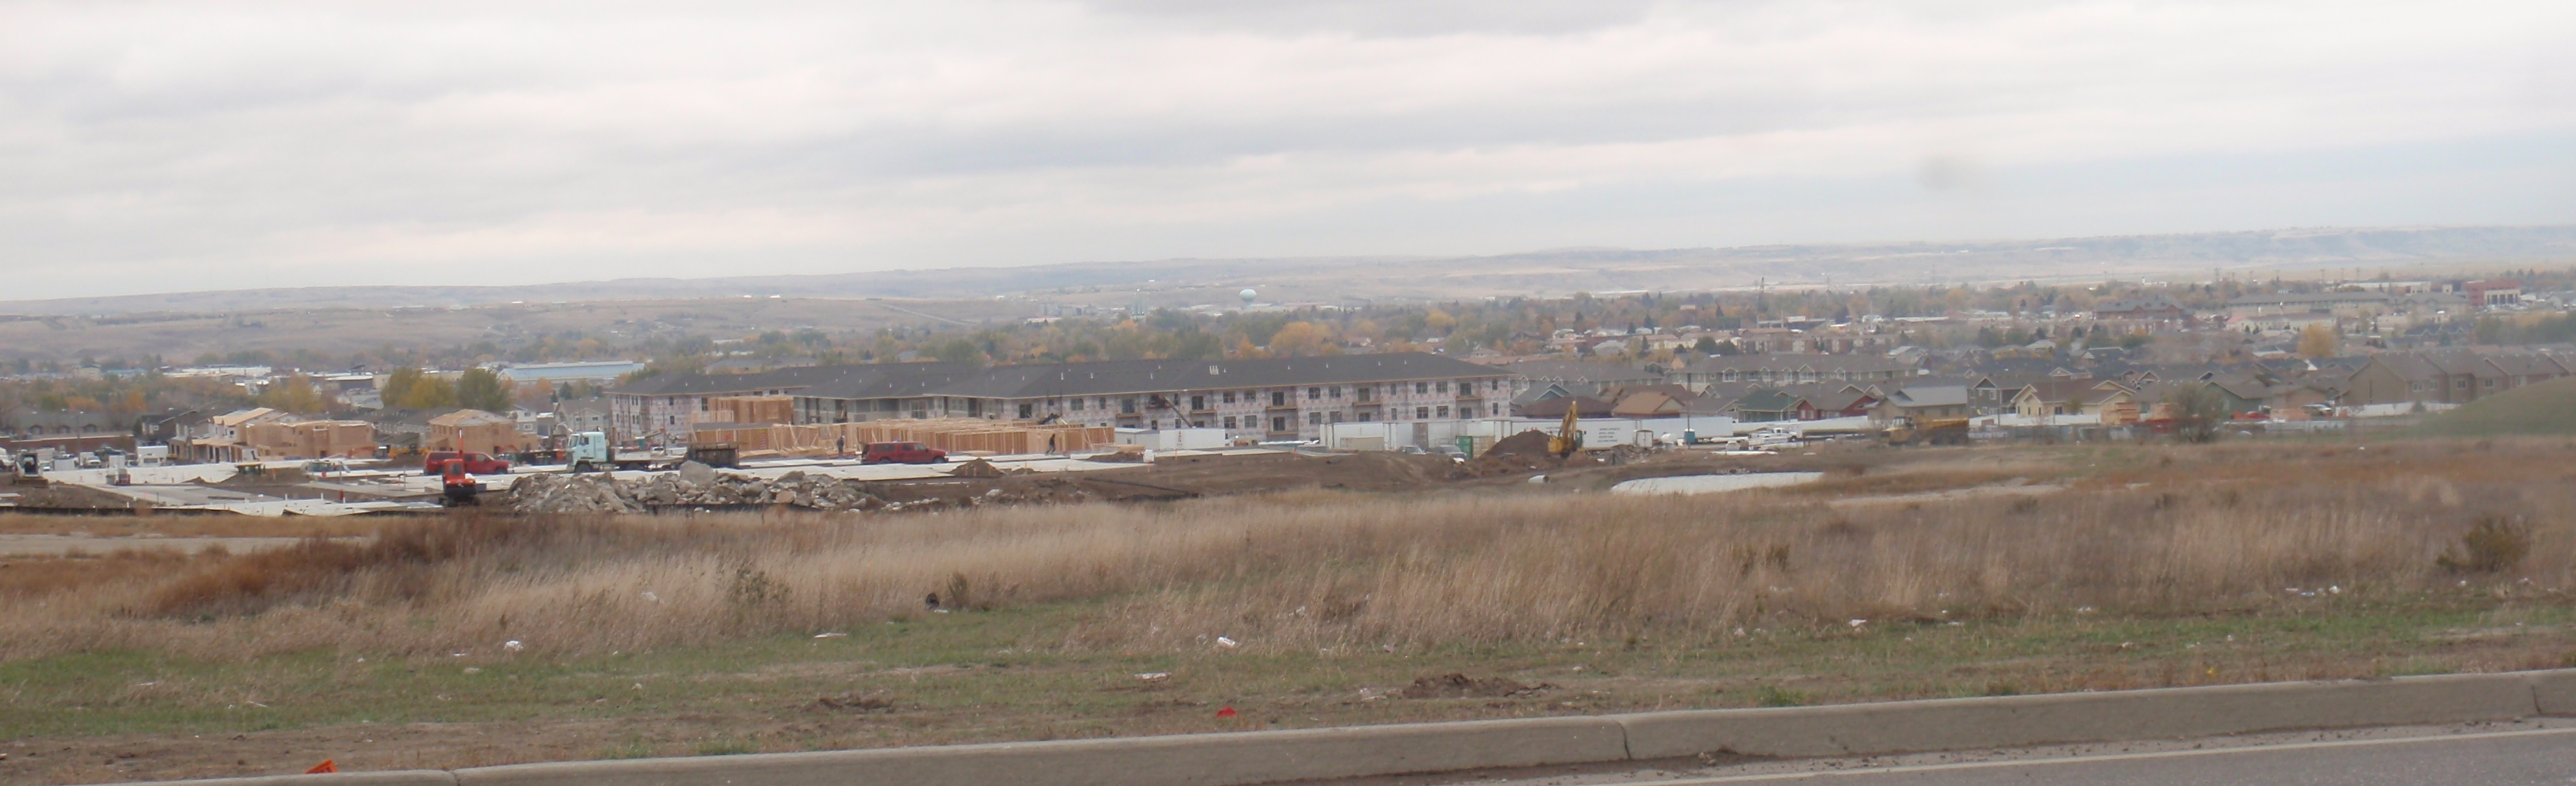 How much new housing will Williston need in the next few years? Photo by James Ulvog.